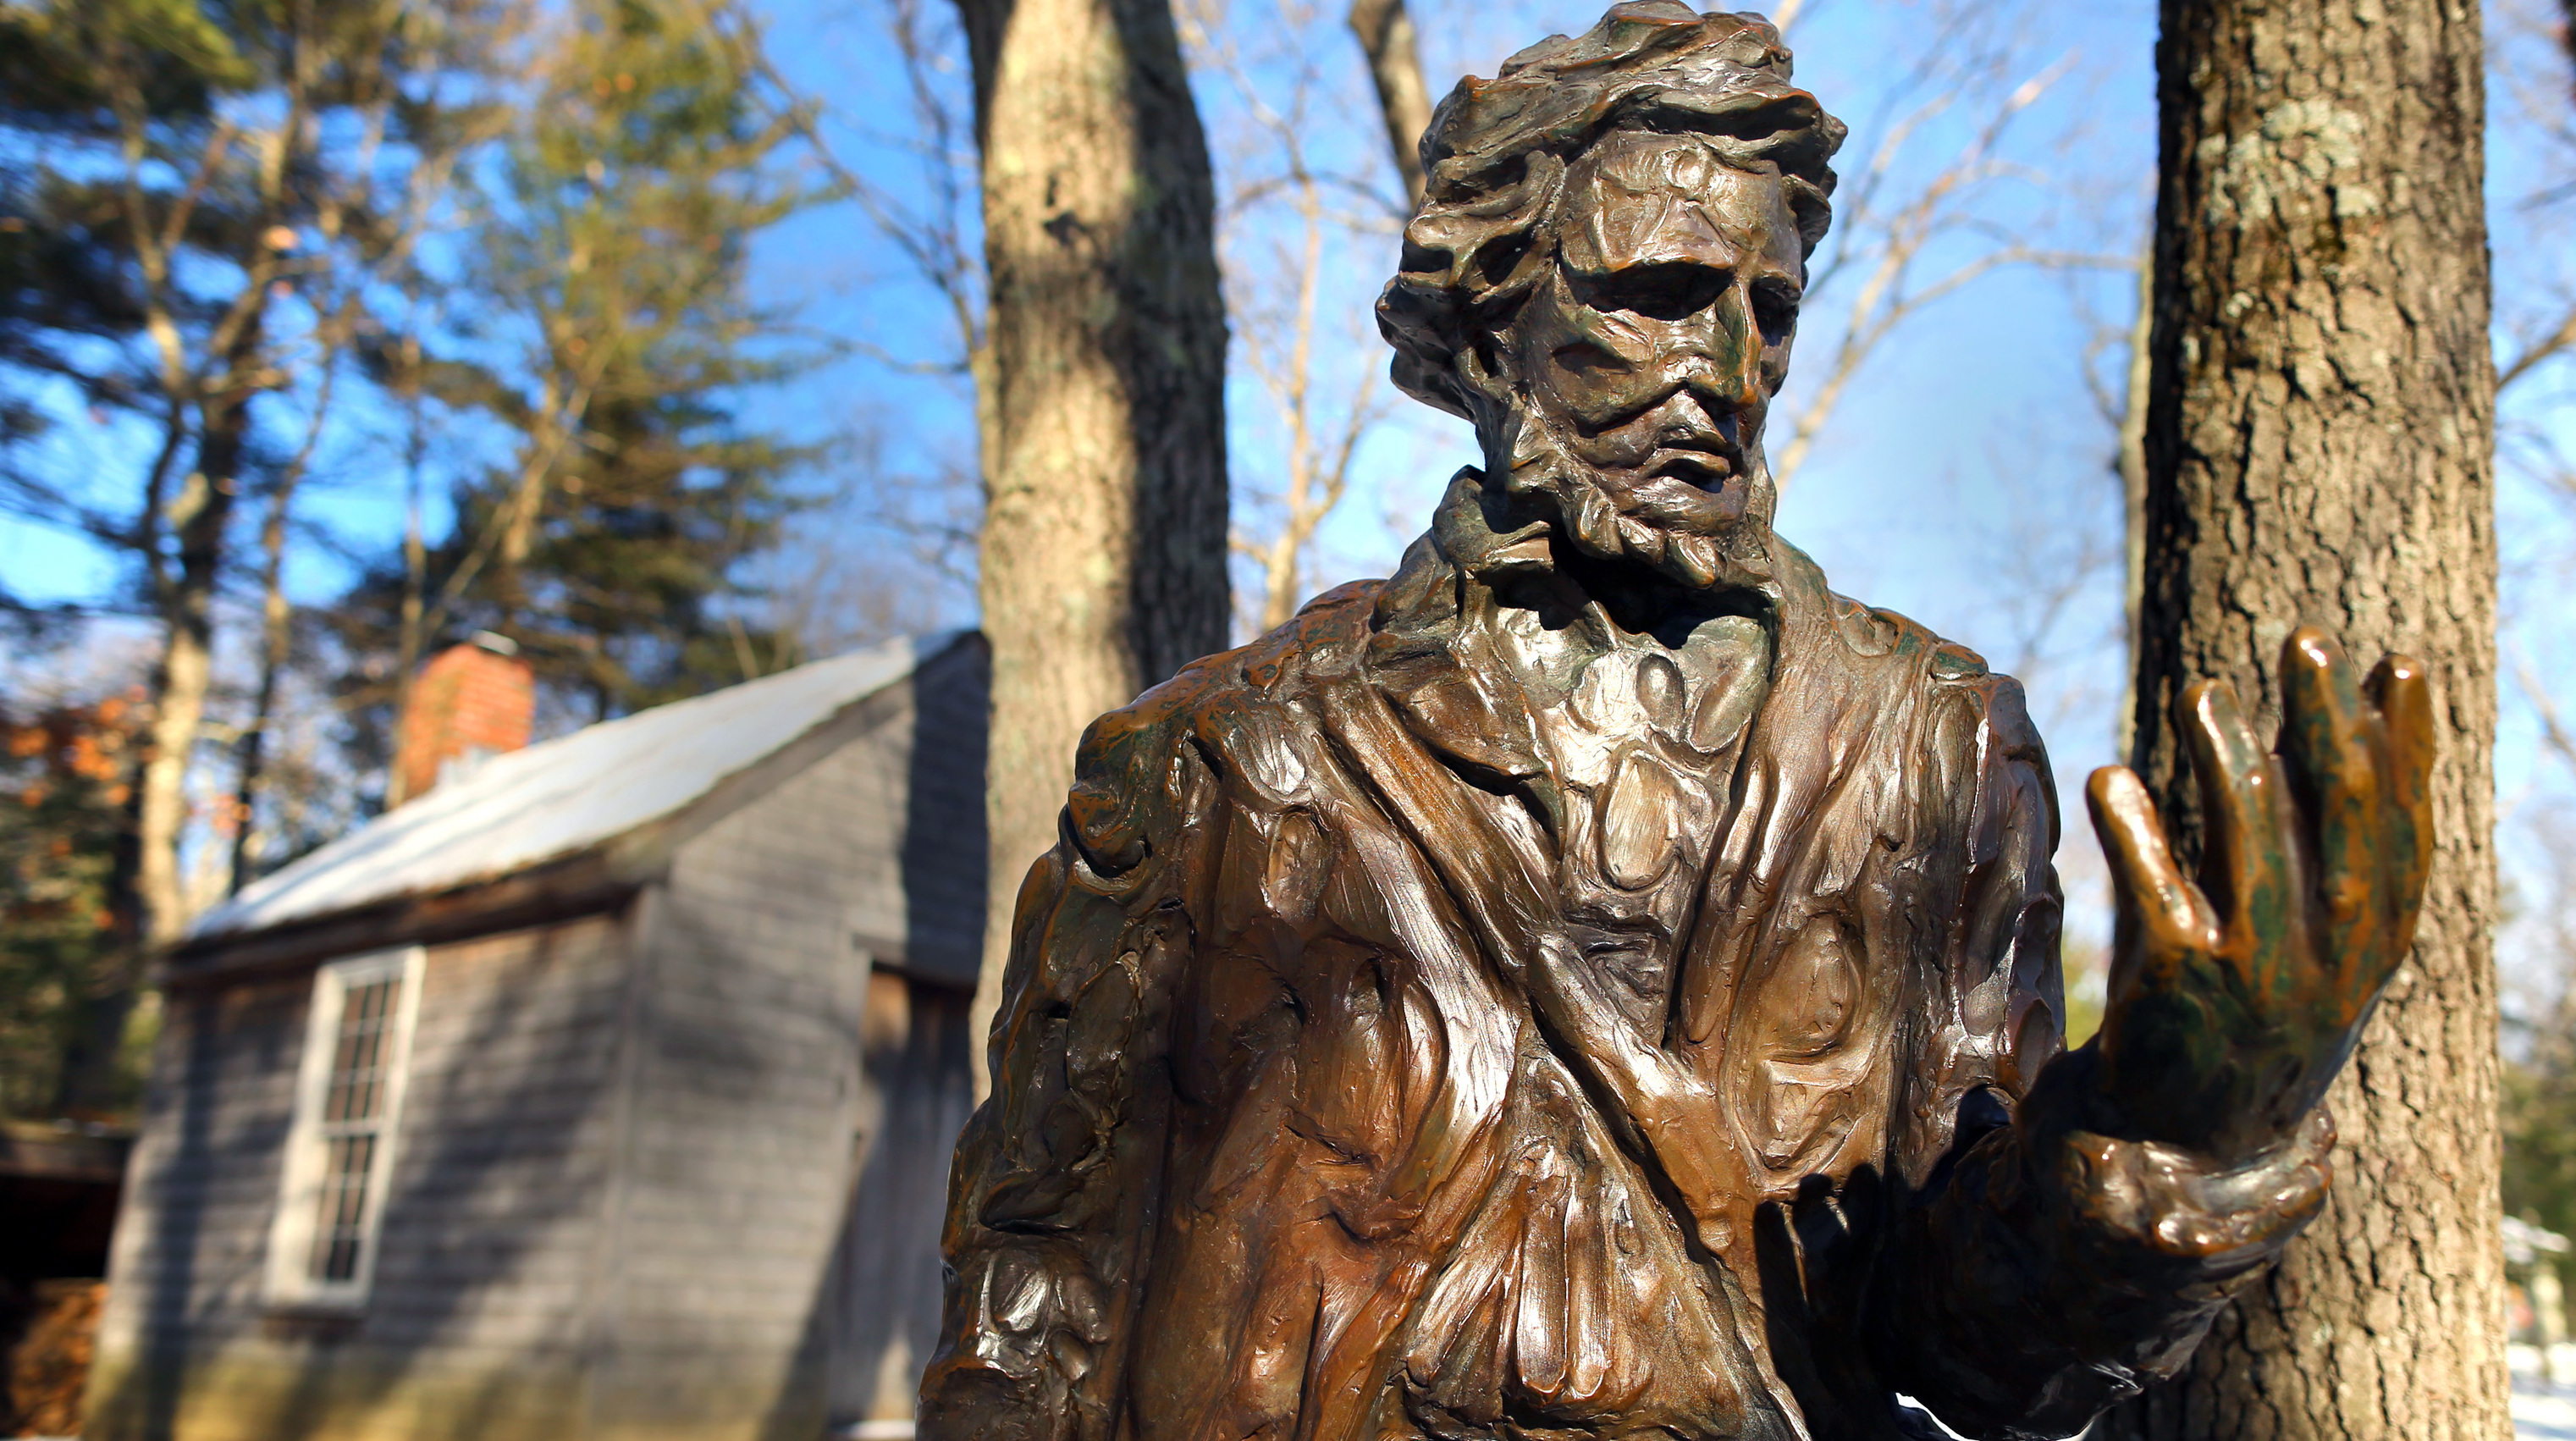 Thoreau's Walden and the Indie Spirit